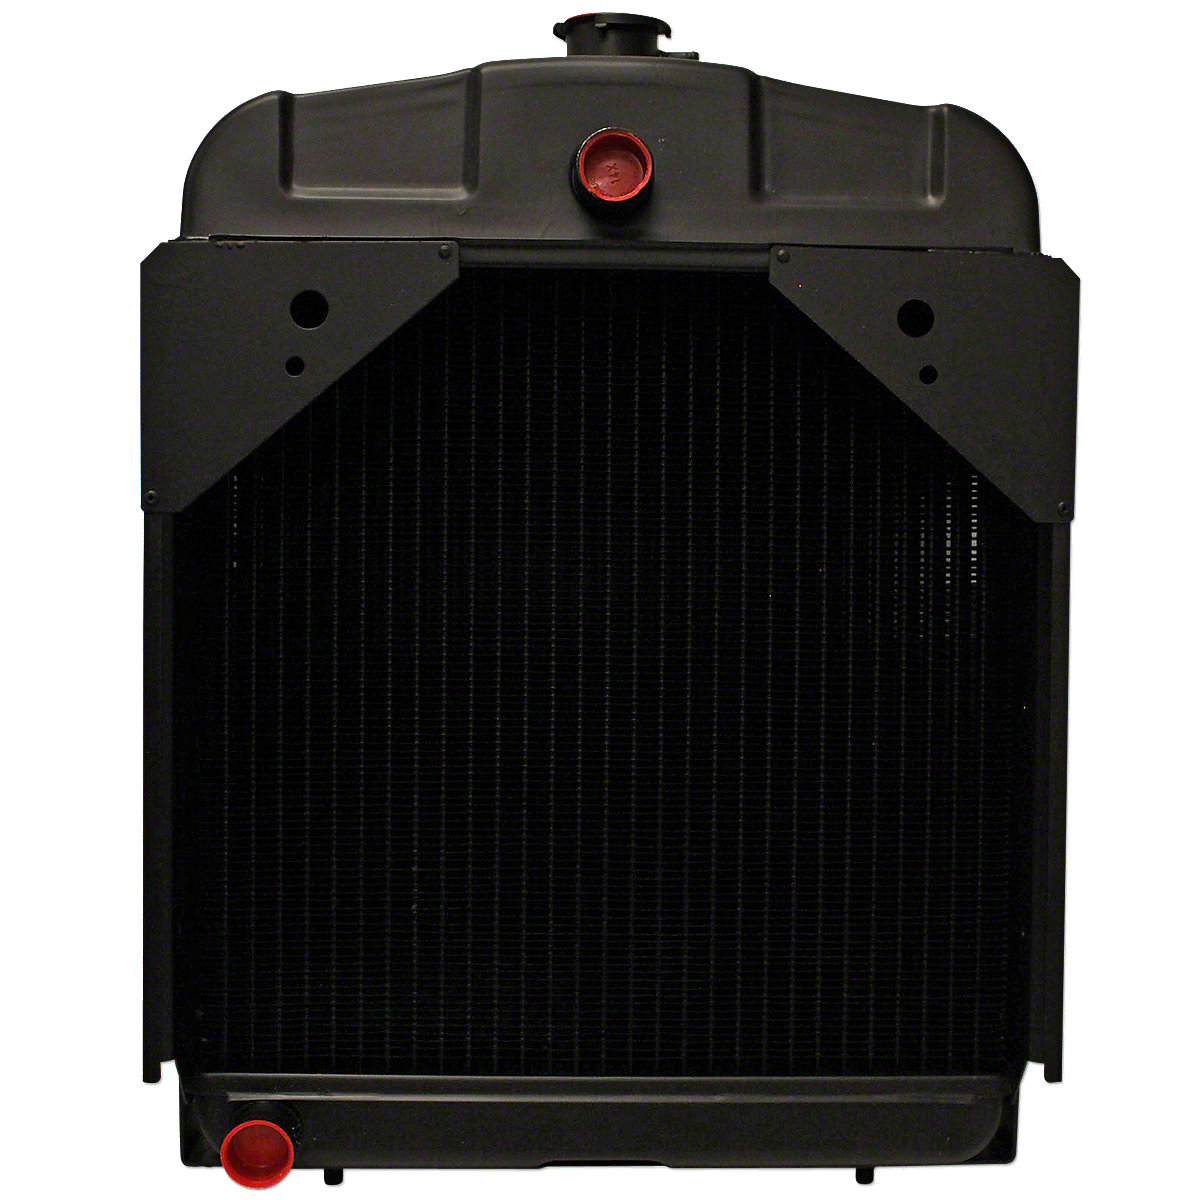 Pressurized Radiator For Allis Chalmers: B, C, CA, D10, D12, IB